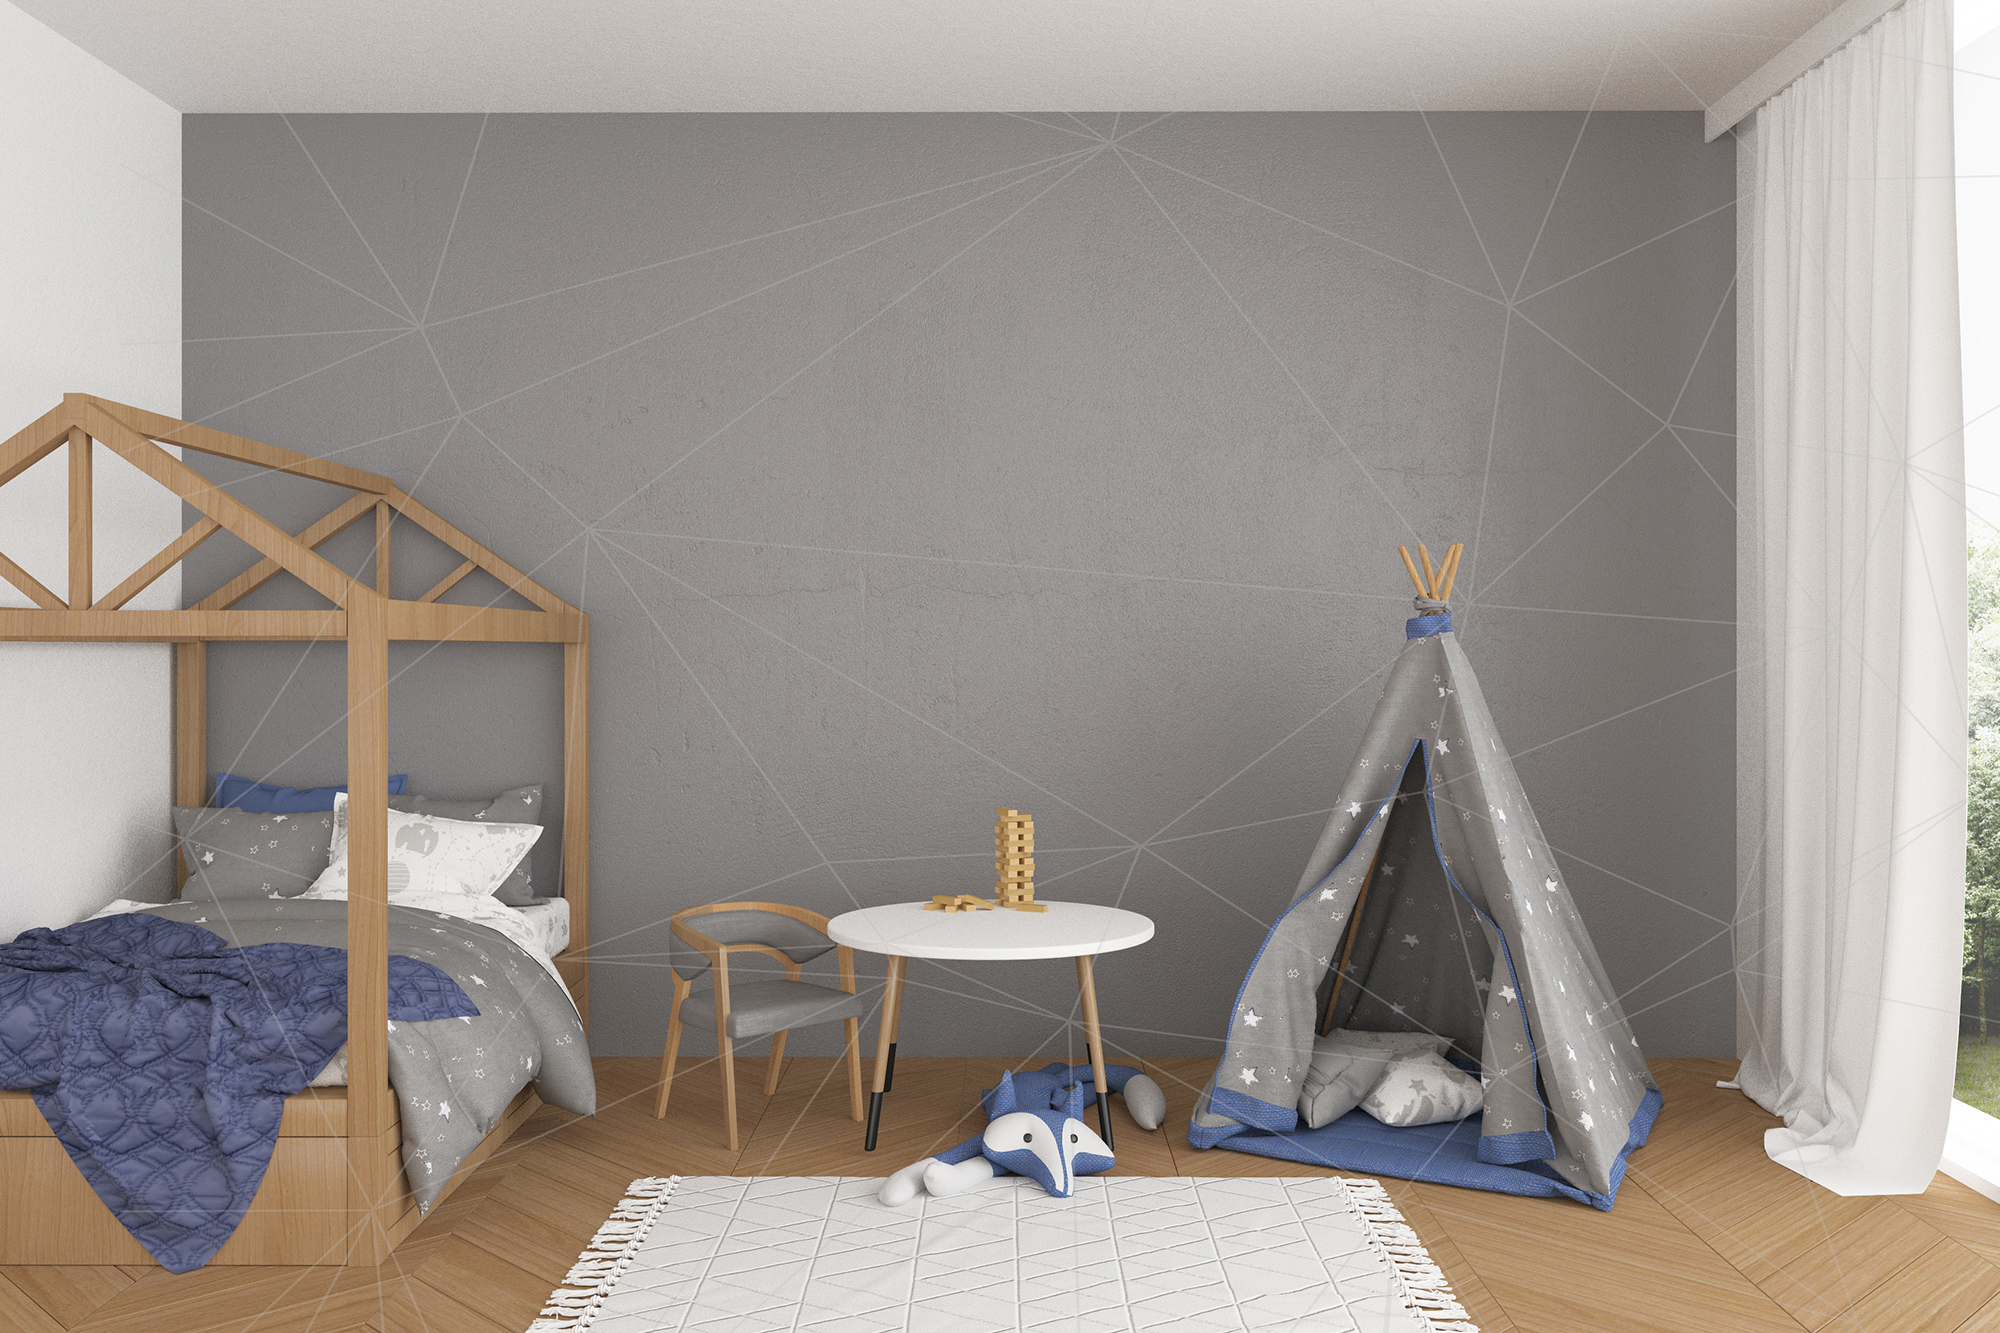 Nursery interior bundle - 10 images 60 off example image 4